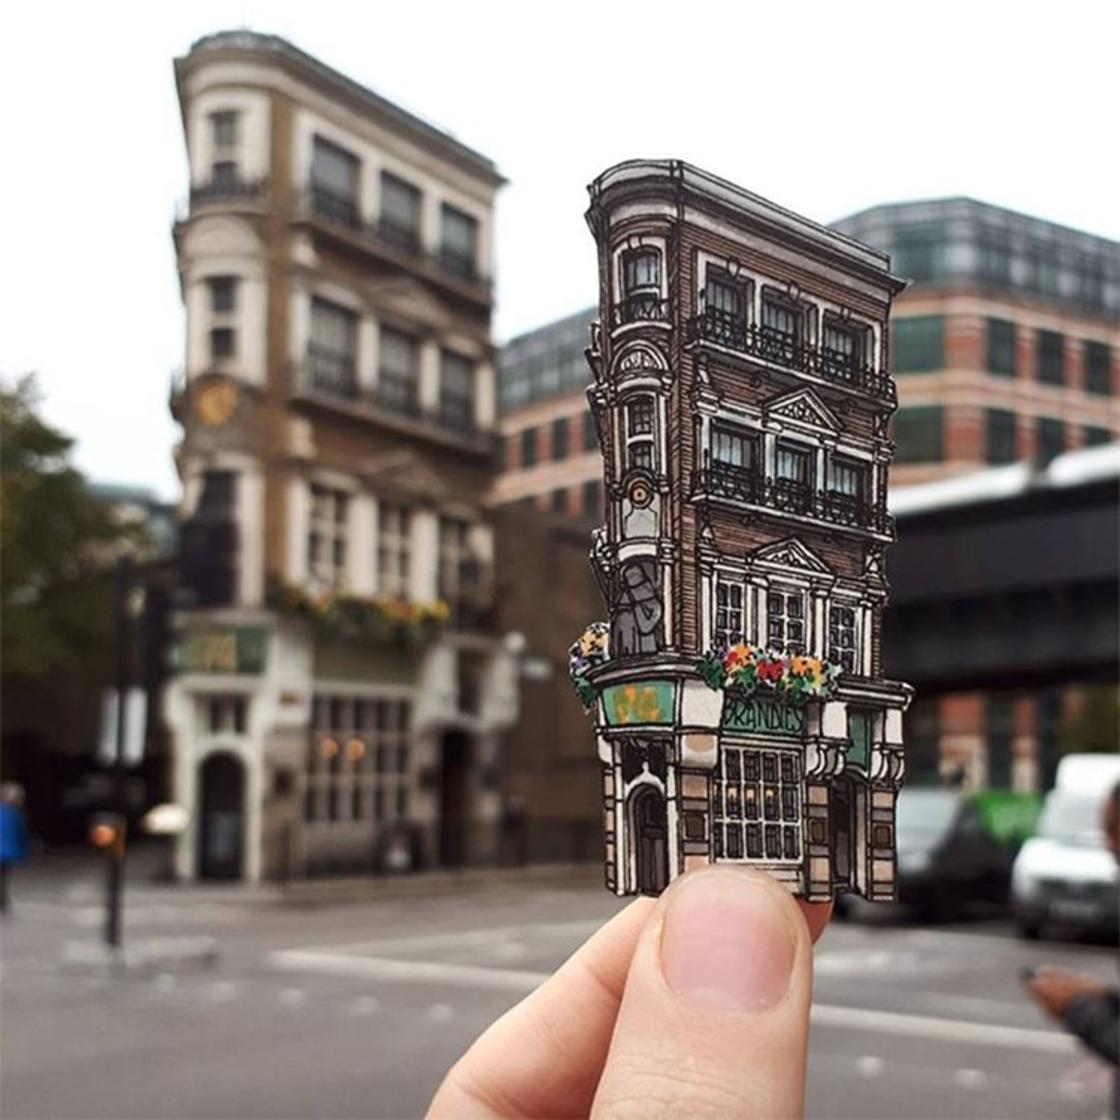 Artist pays tribute to iconic London pubs with cute illustrations (12 pics)